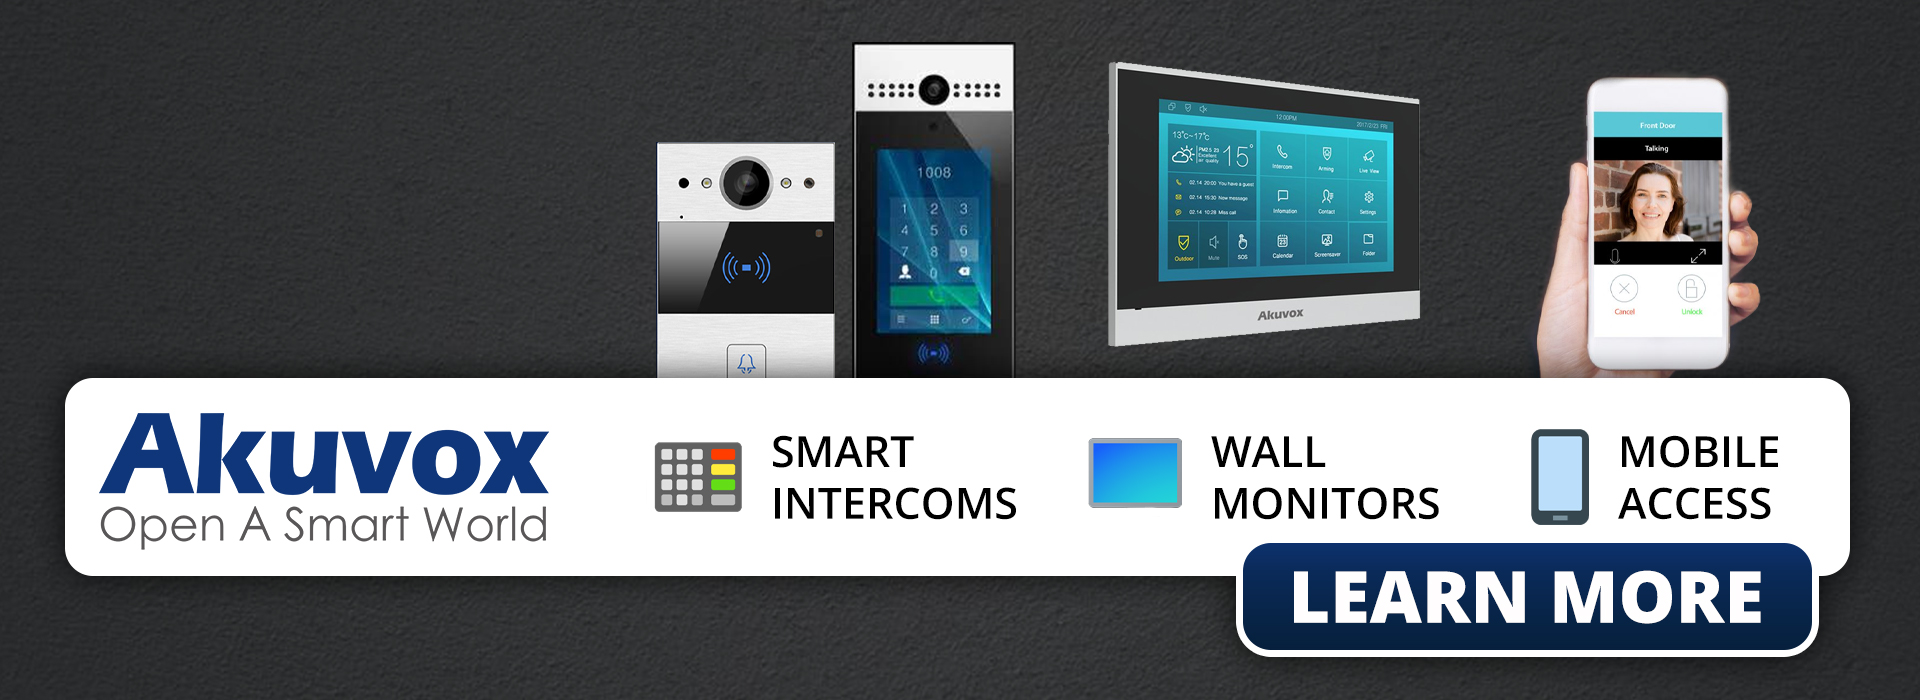 Click to learn more about Akuvox Smart Intercoms and Doorphone Monitors